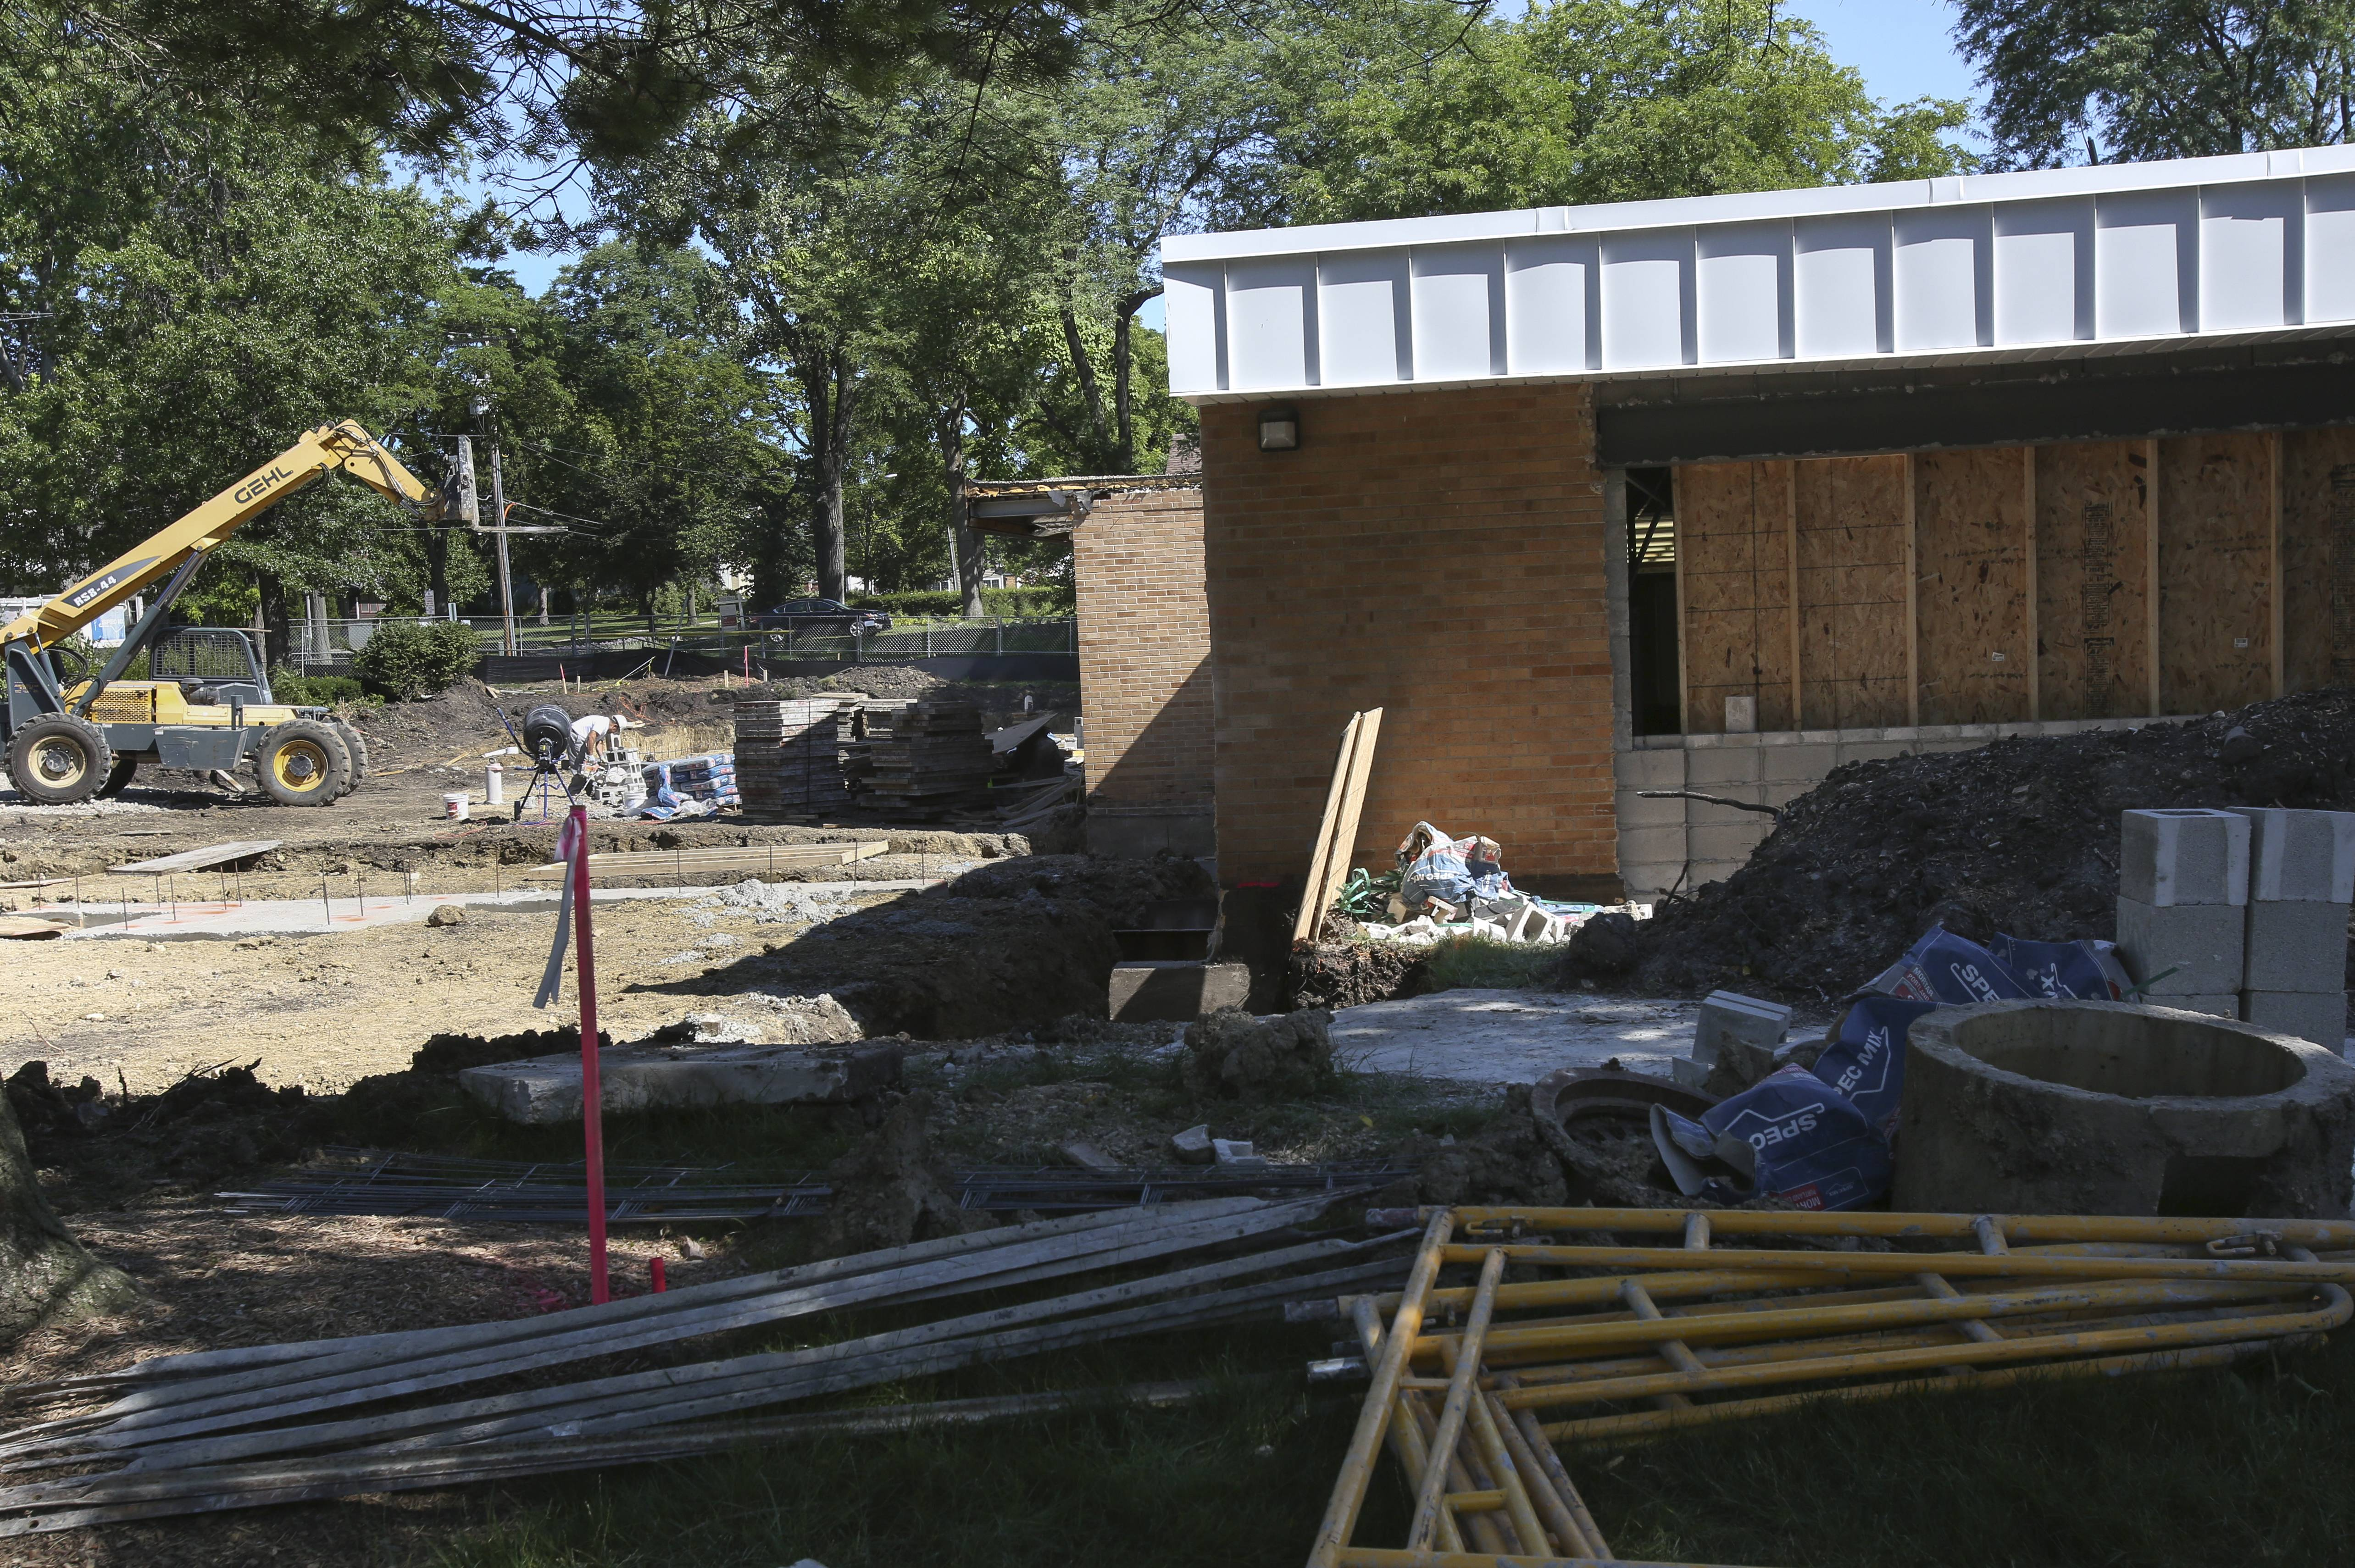 Construction work is in full swing at Lincoln Elementary School in Glen Ellyn, where crews are building a classroom addition that should be open after Christmas break.